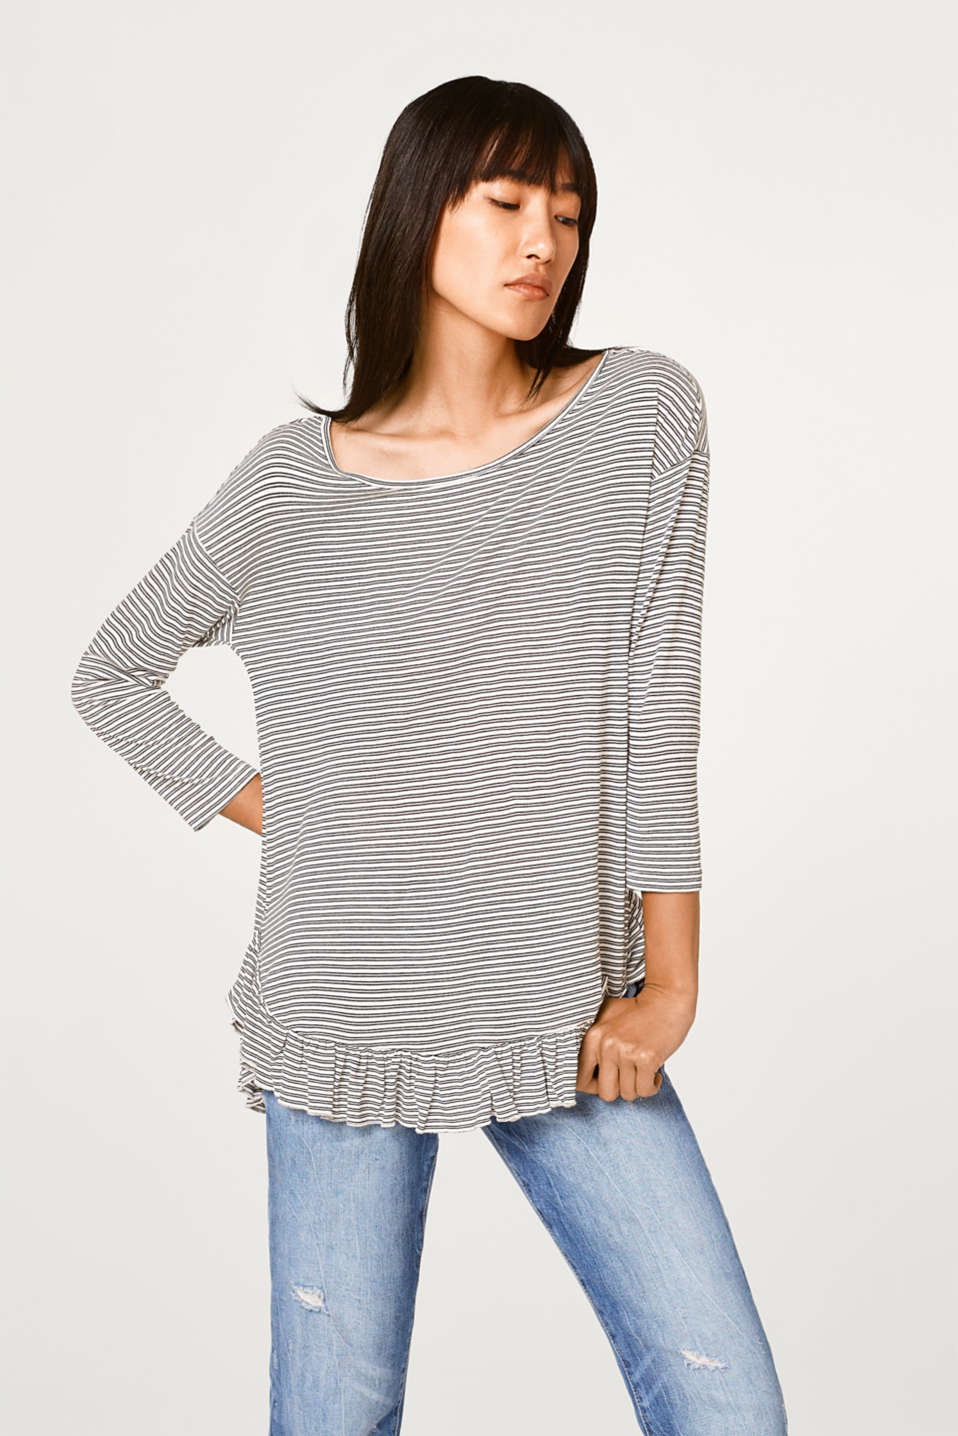 Esprit - Silky striped top with a frilled hem